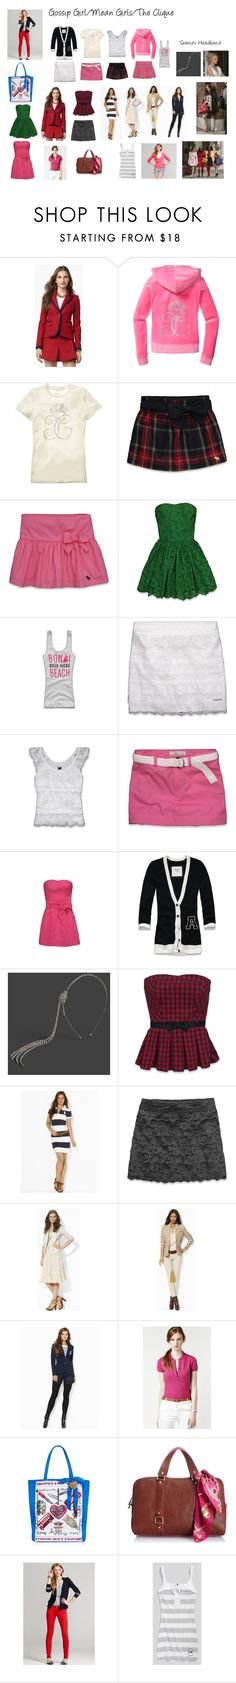 """""""Fall 2012 Mean Girls/Gossip Girl Inspiration"""" by bridgettroal ❤ liked on Polyvore featuring Juicy Couture, Abercrombie & Fitch, Ralph Lauren and Lacoste"""